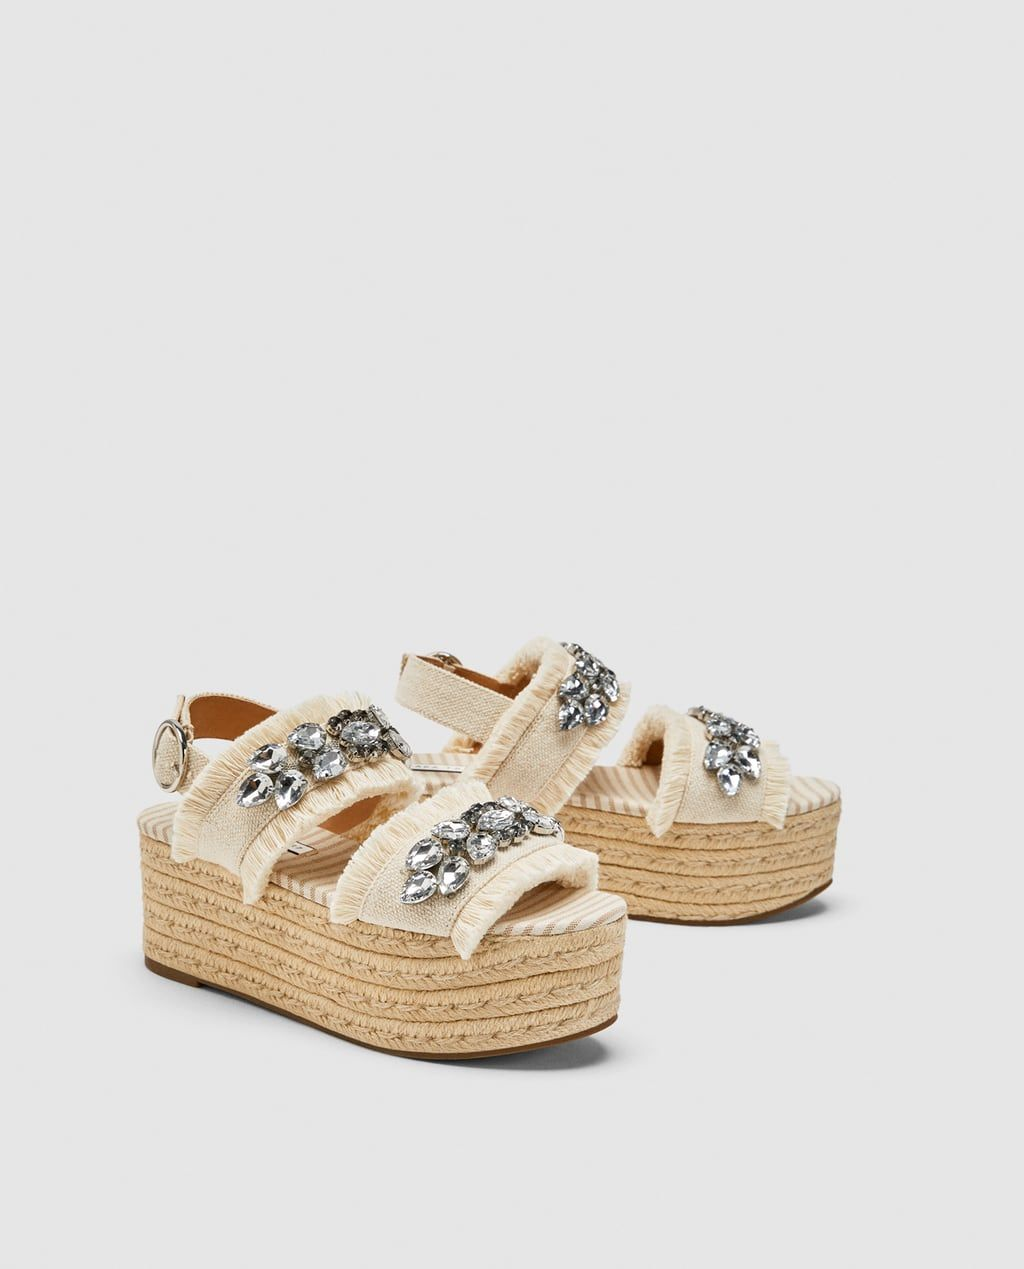 61e4fd02aa68f1 PLATFORM SANDALS WITH BEADED DETAIL from Zara BEADED PLATFORM WEDGES Pole  Dance, Des Espadrilles,